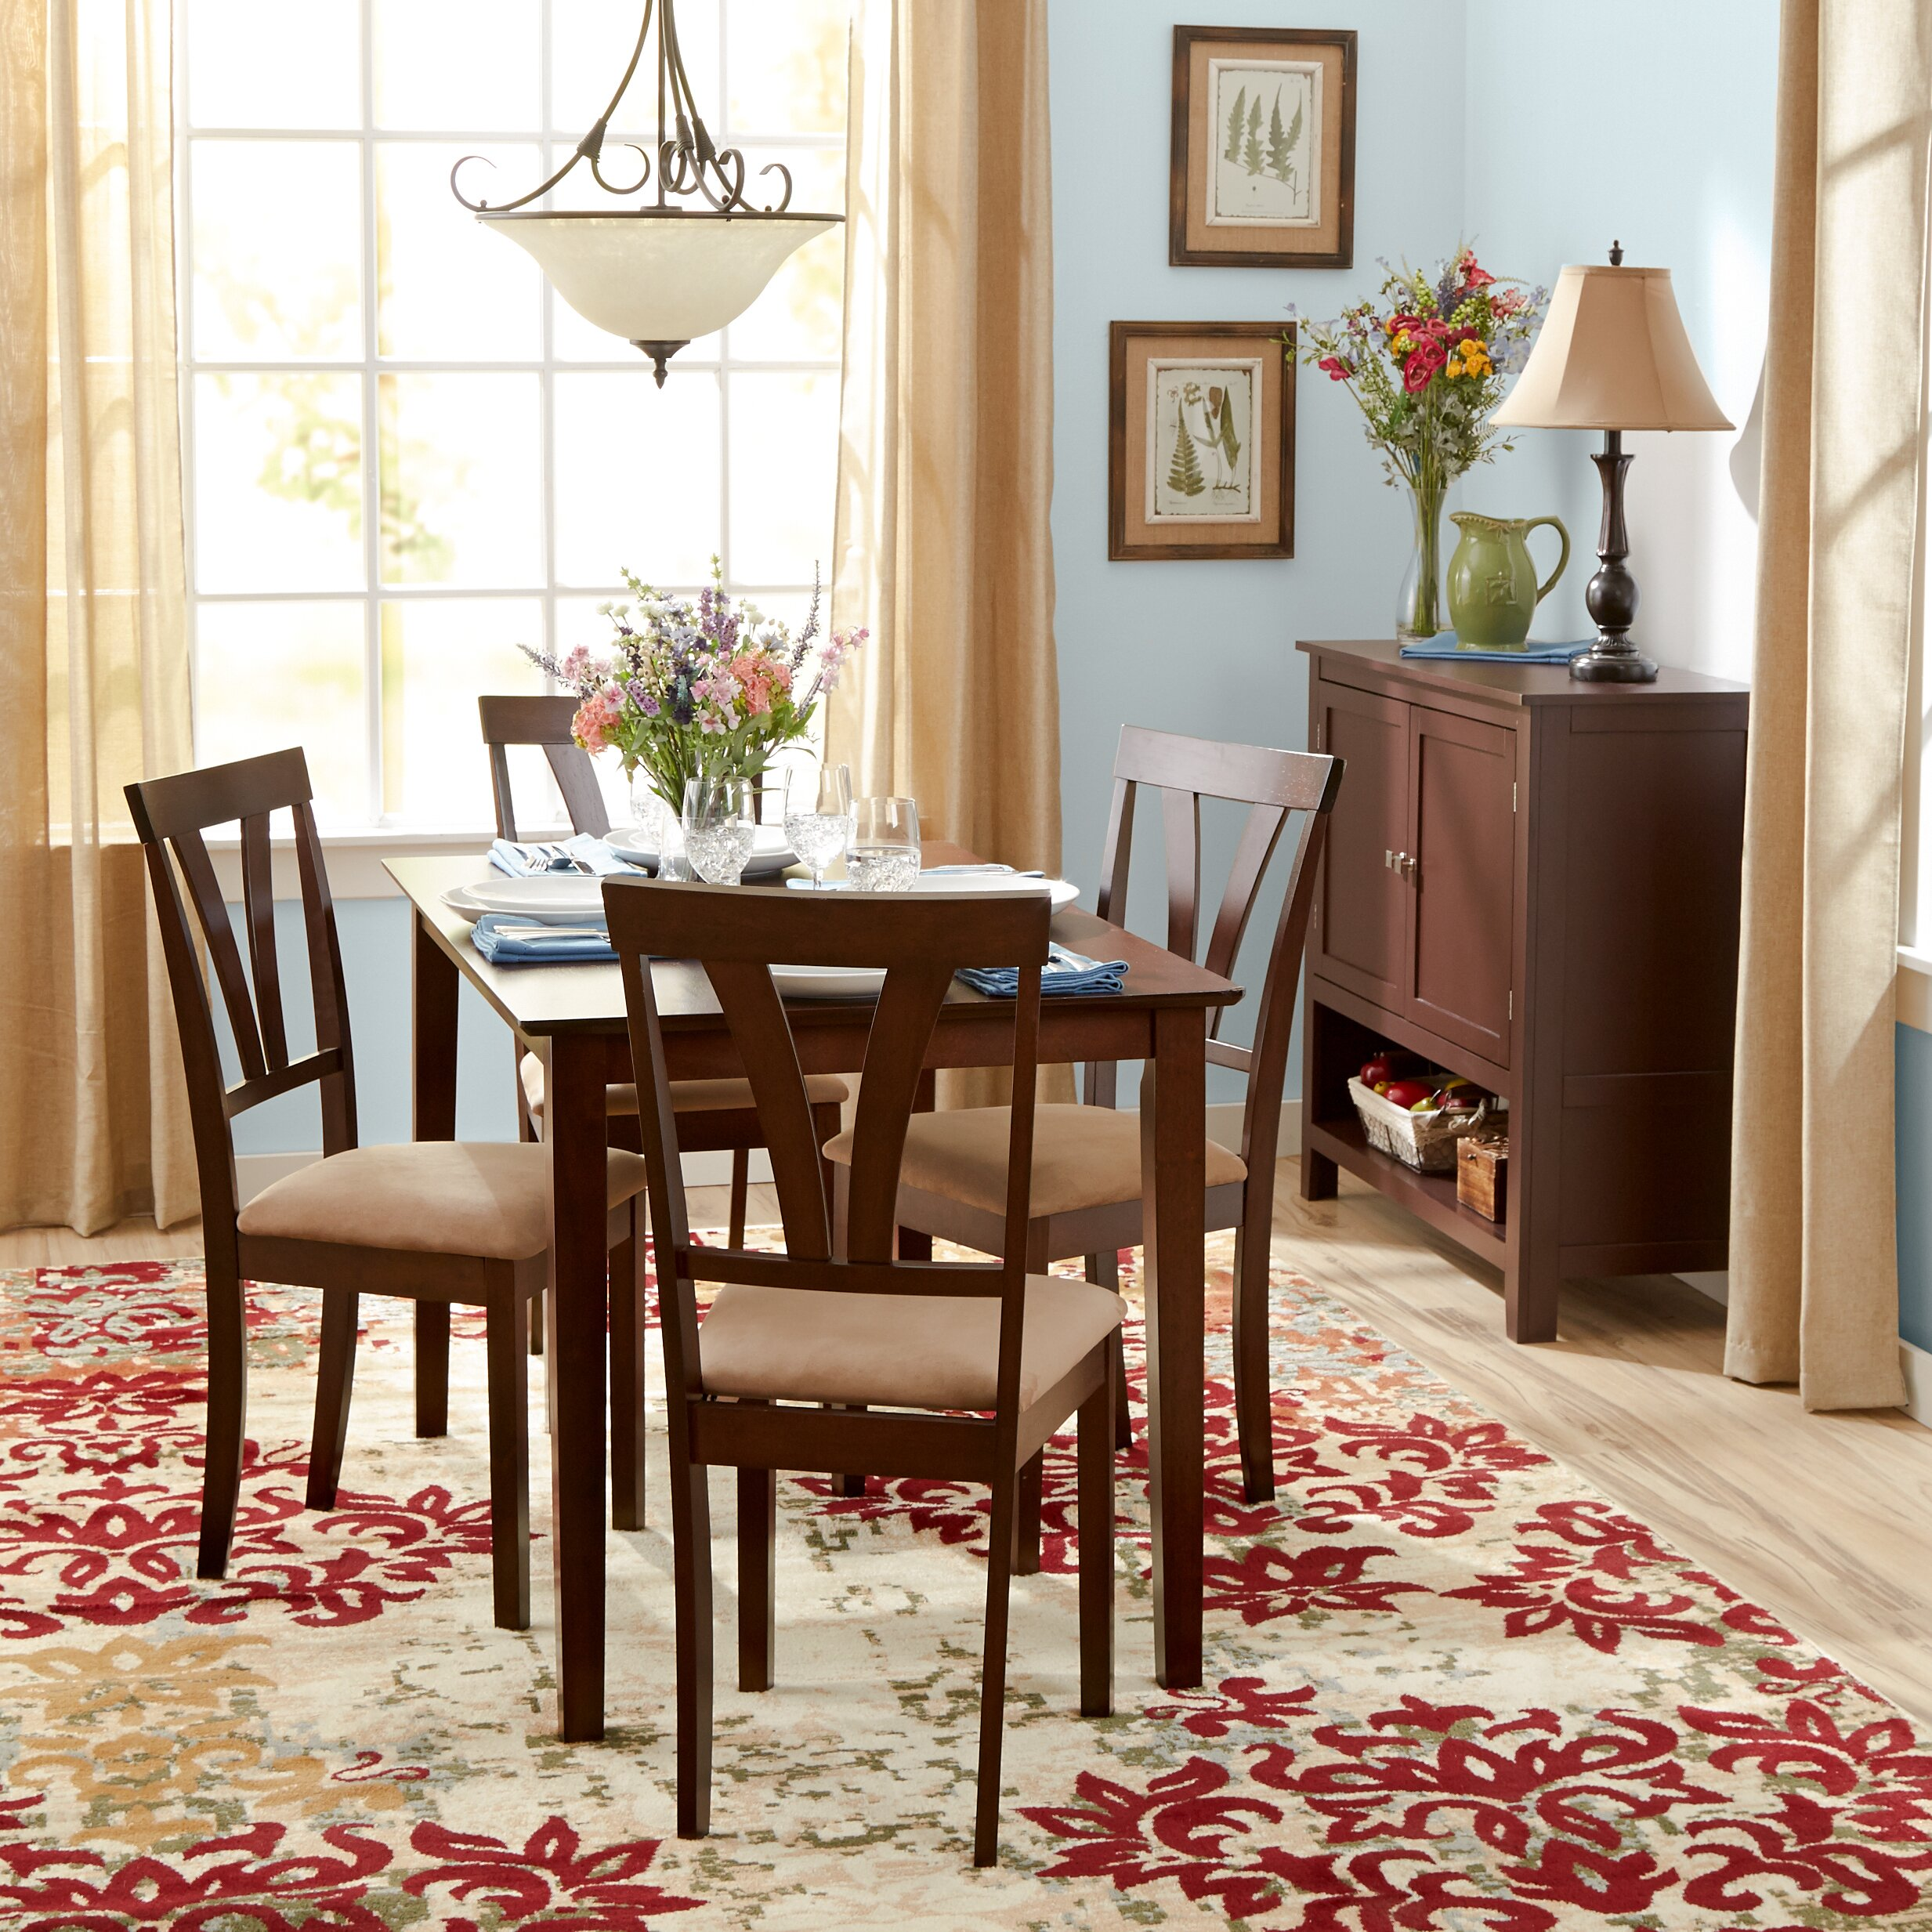 Andover mills donald 5 piece dining set reviews wayfair for Rooms to go dining sets